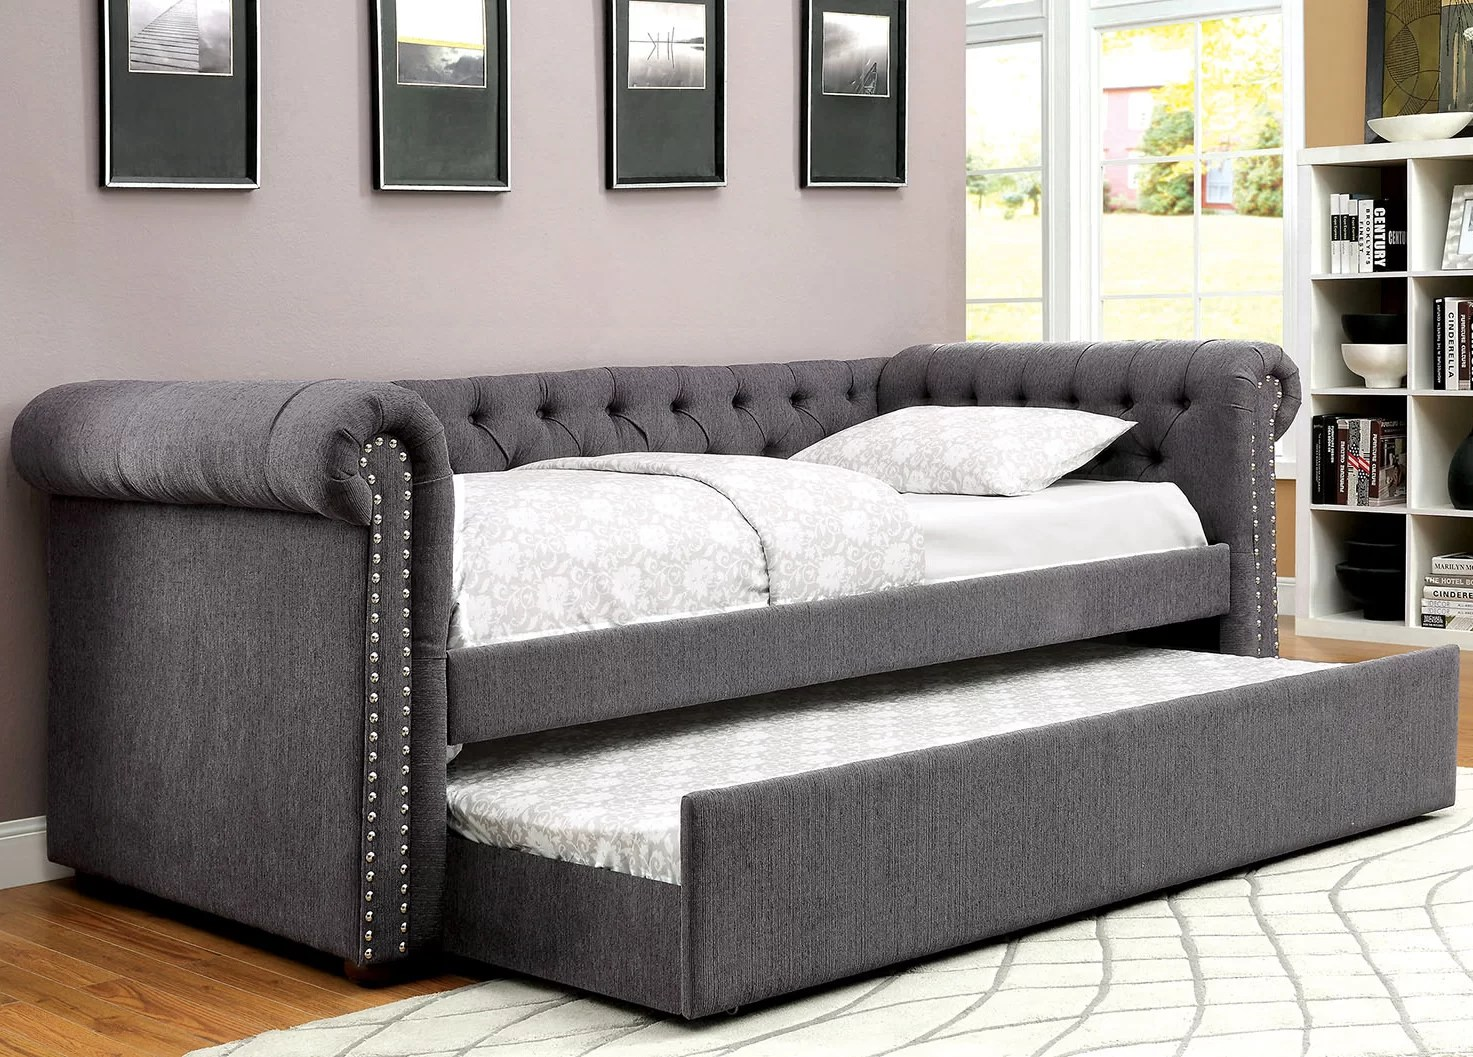 leona sofa bed lazy boy reclining manual a andj homes studio daybed with trundle you 39ll love